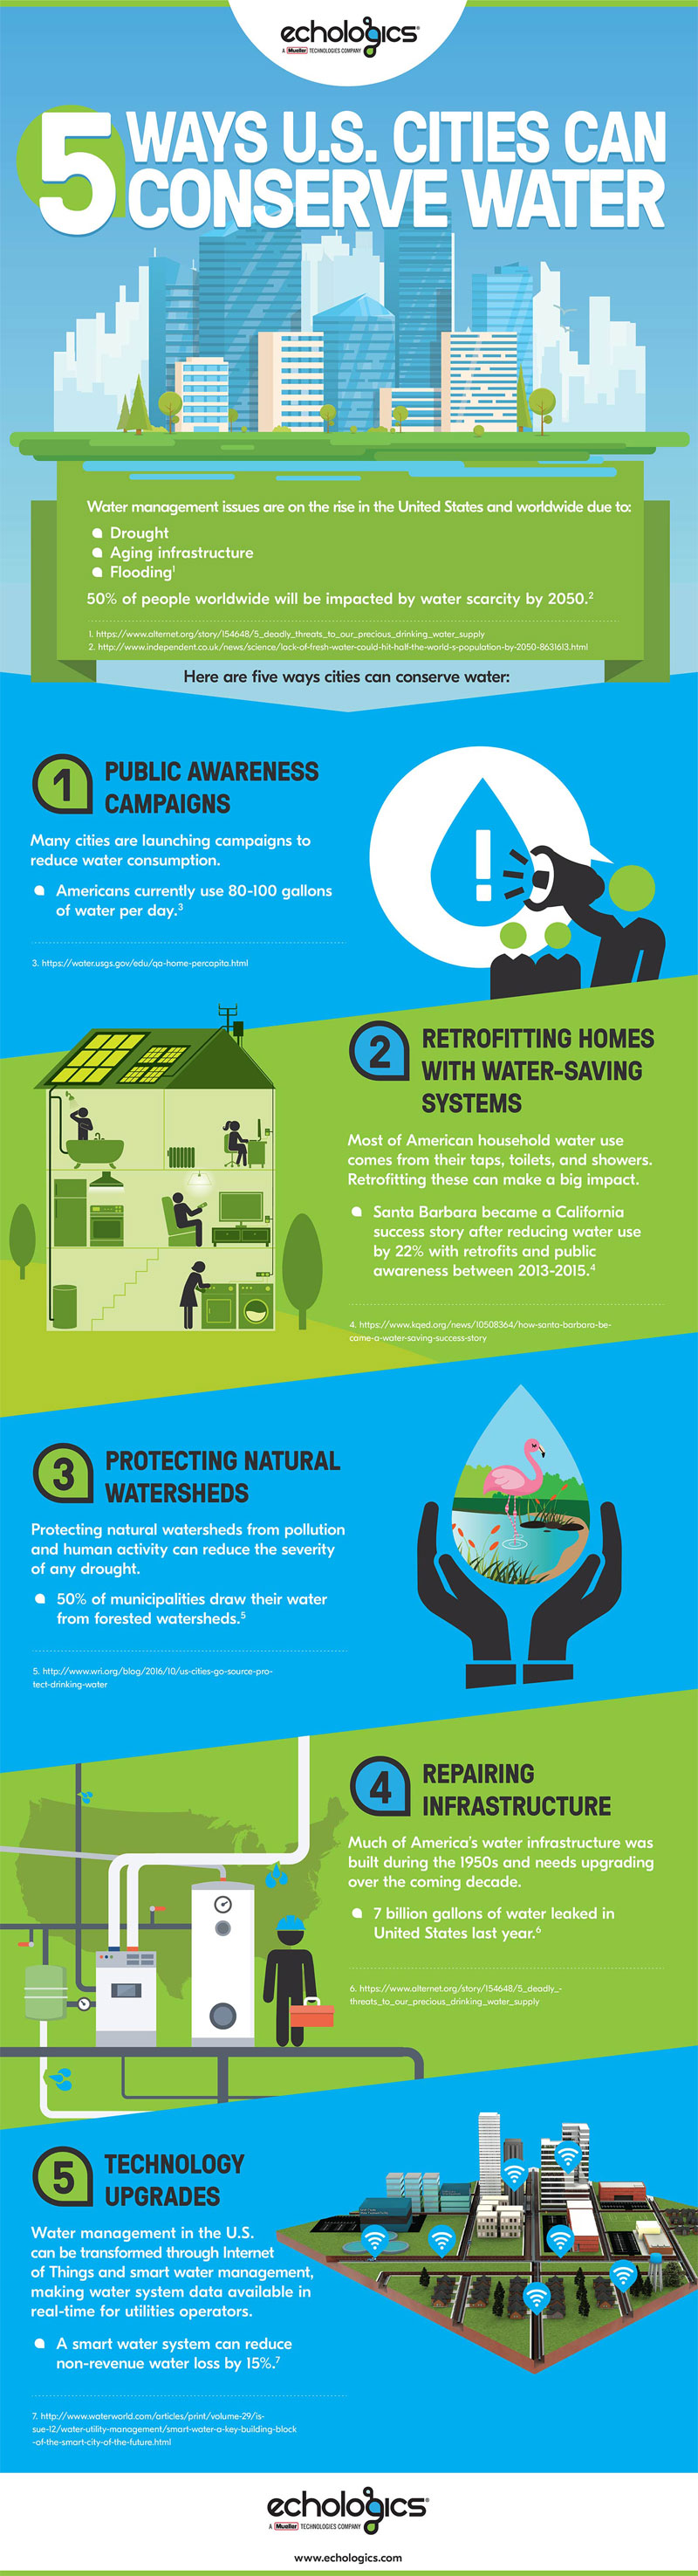 5 Ways U.S. Cities Can Conserve Water